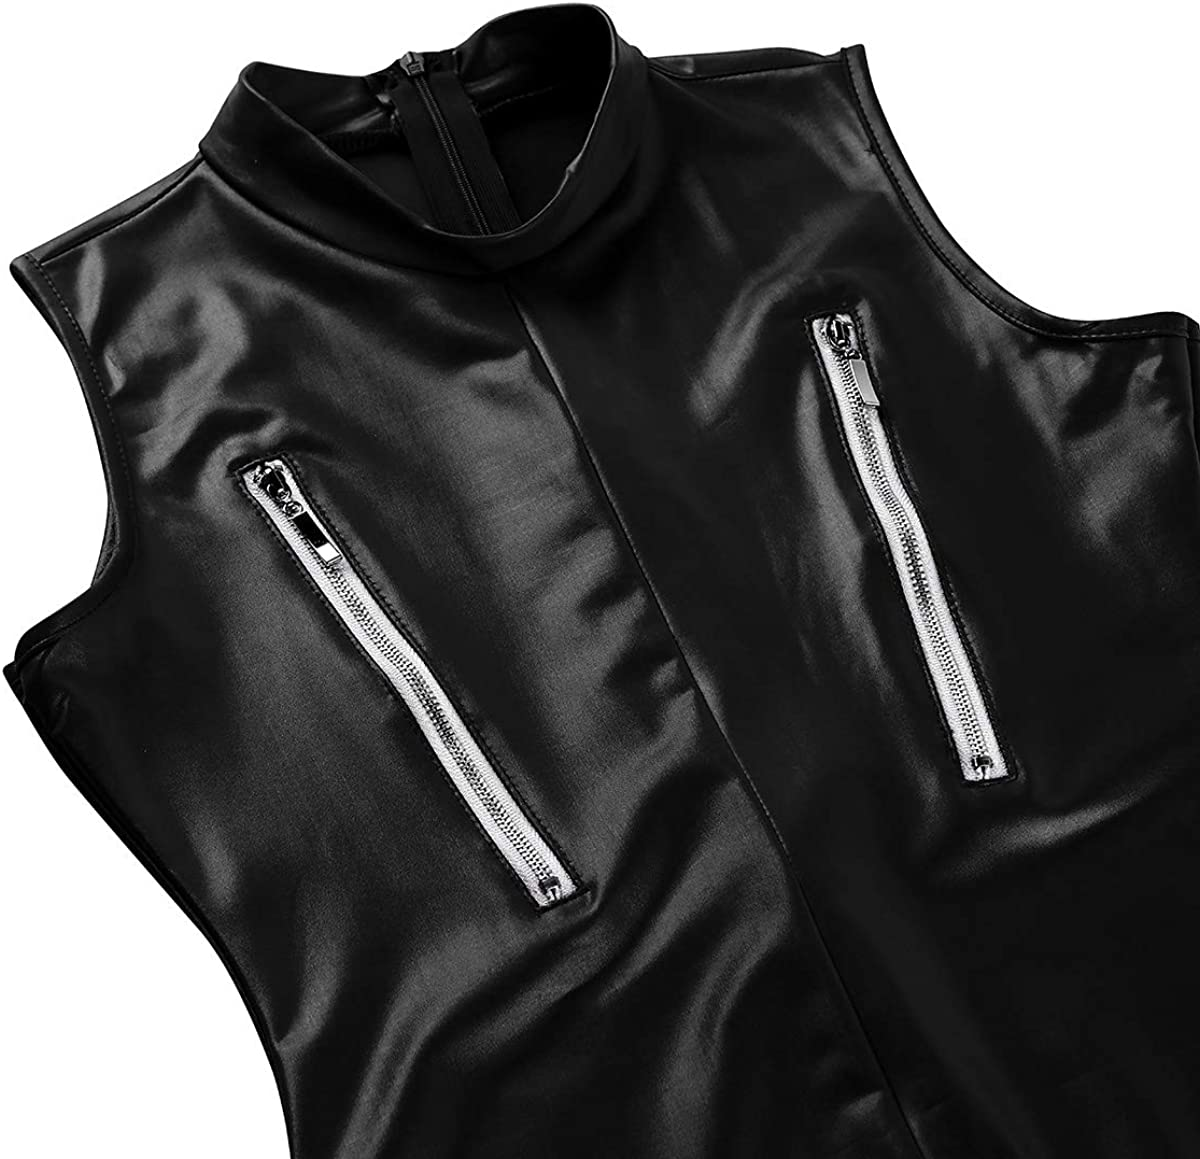 moily Womens One Piece Wetlook Patent Leather Stand Collar Sleeveless Zipper Crotch Bodysuit